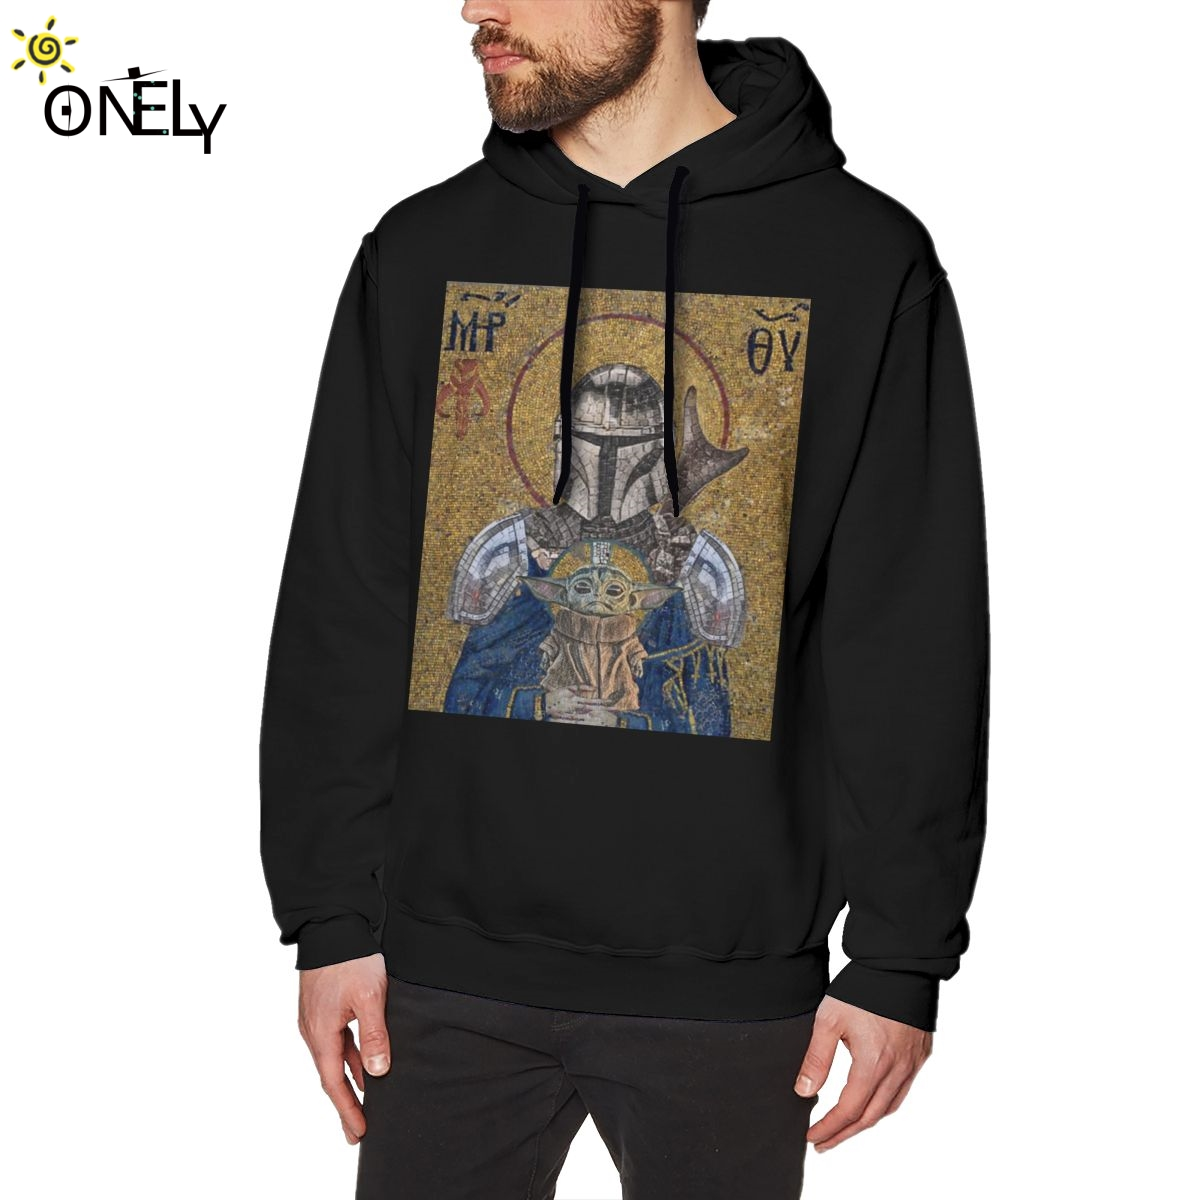 The Child Is My Religion Hoodies The Mandalorian Baby Yoda Star Wars Jedi Fett Sweatshirt For Male Fashion Camiseta